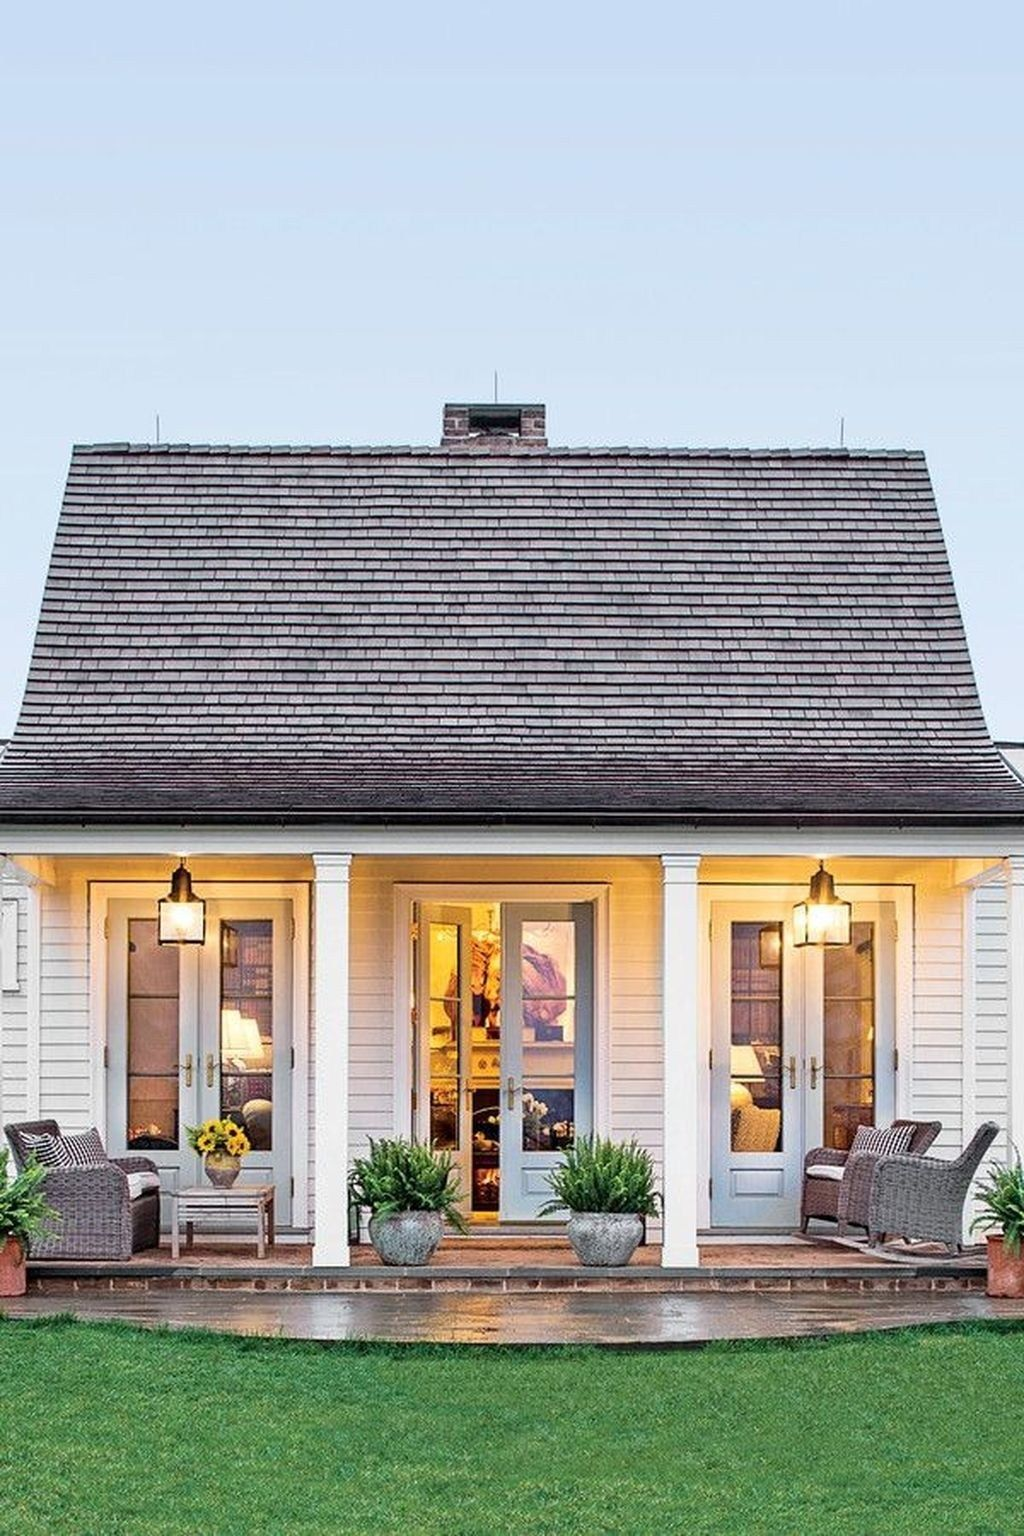 Perfect Small Cottage House Plans Ideas22 Small Cottage House Plans Small Cottage Homes Tiny House Plans Small Cottages